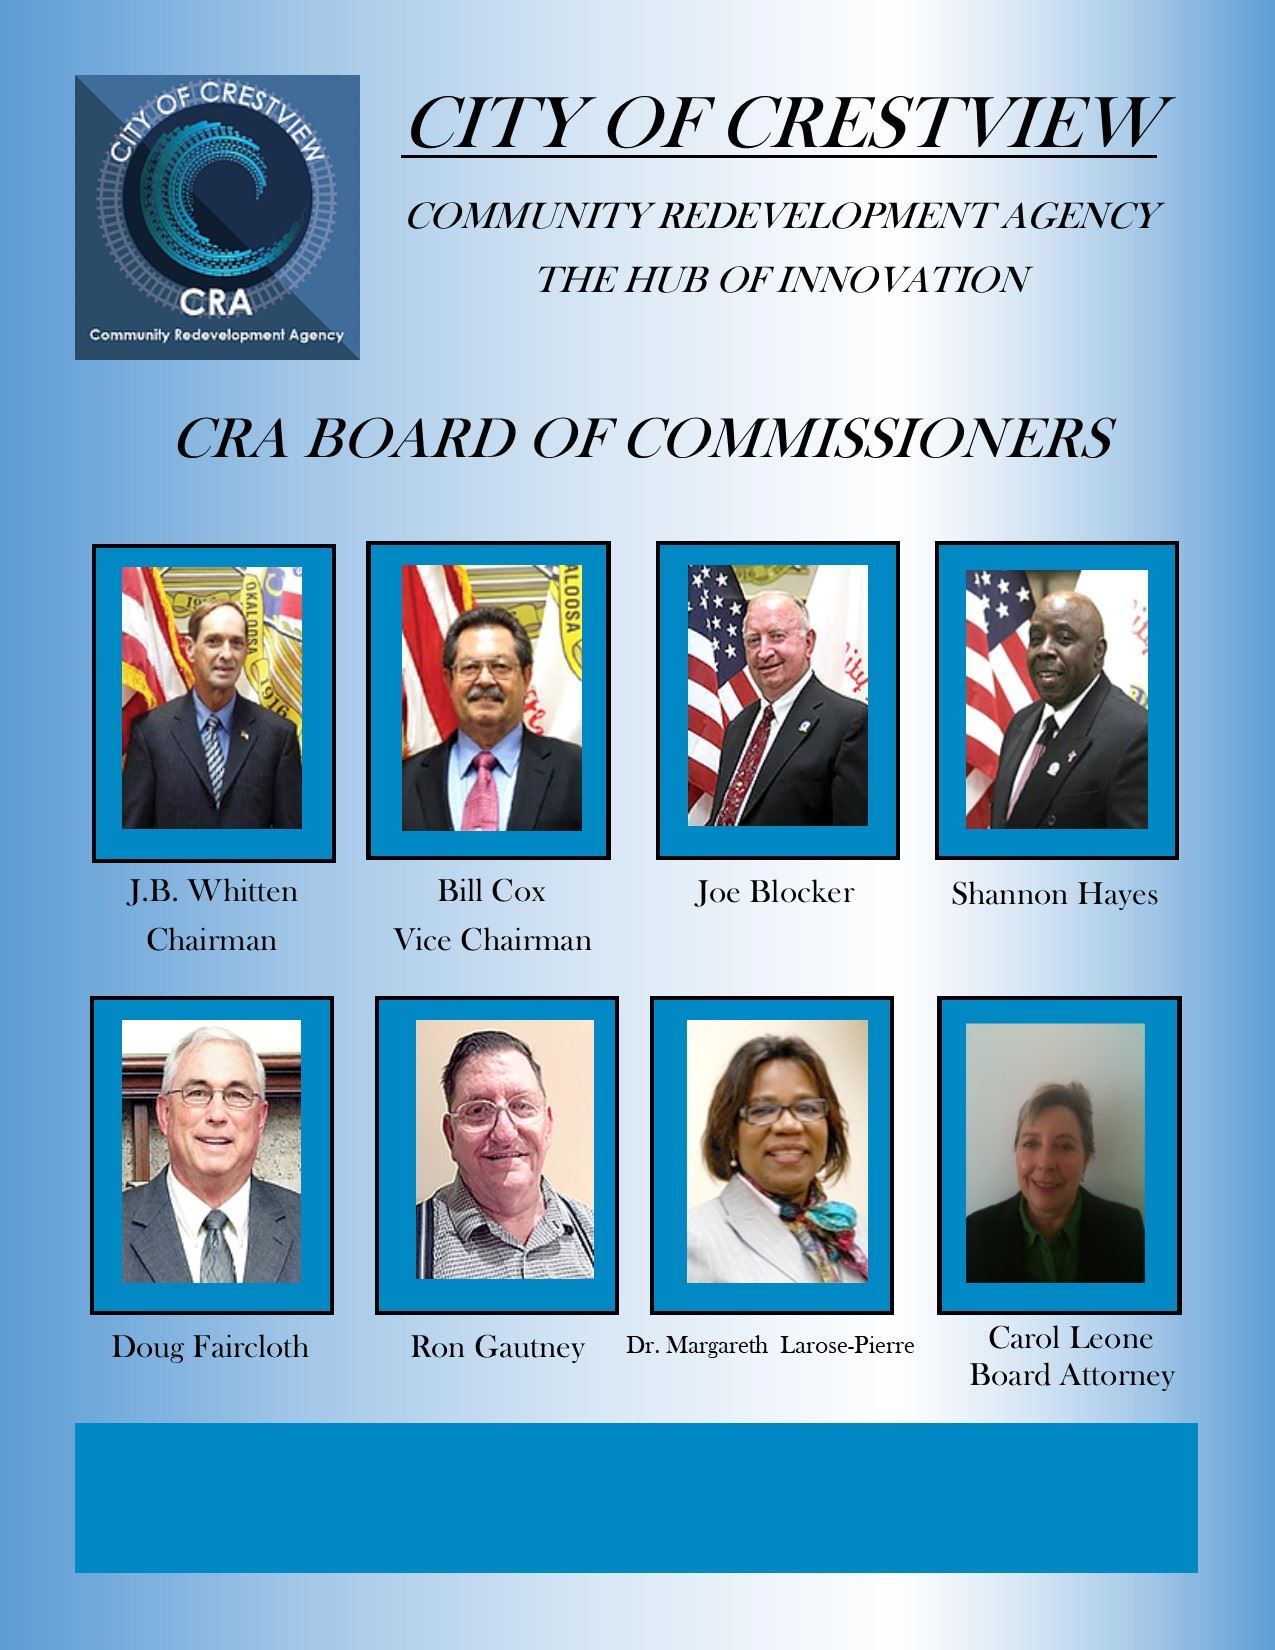 CRA Board of Commissioners